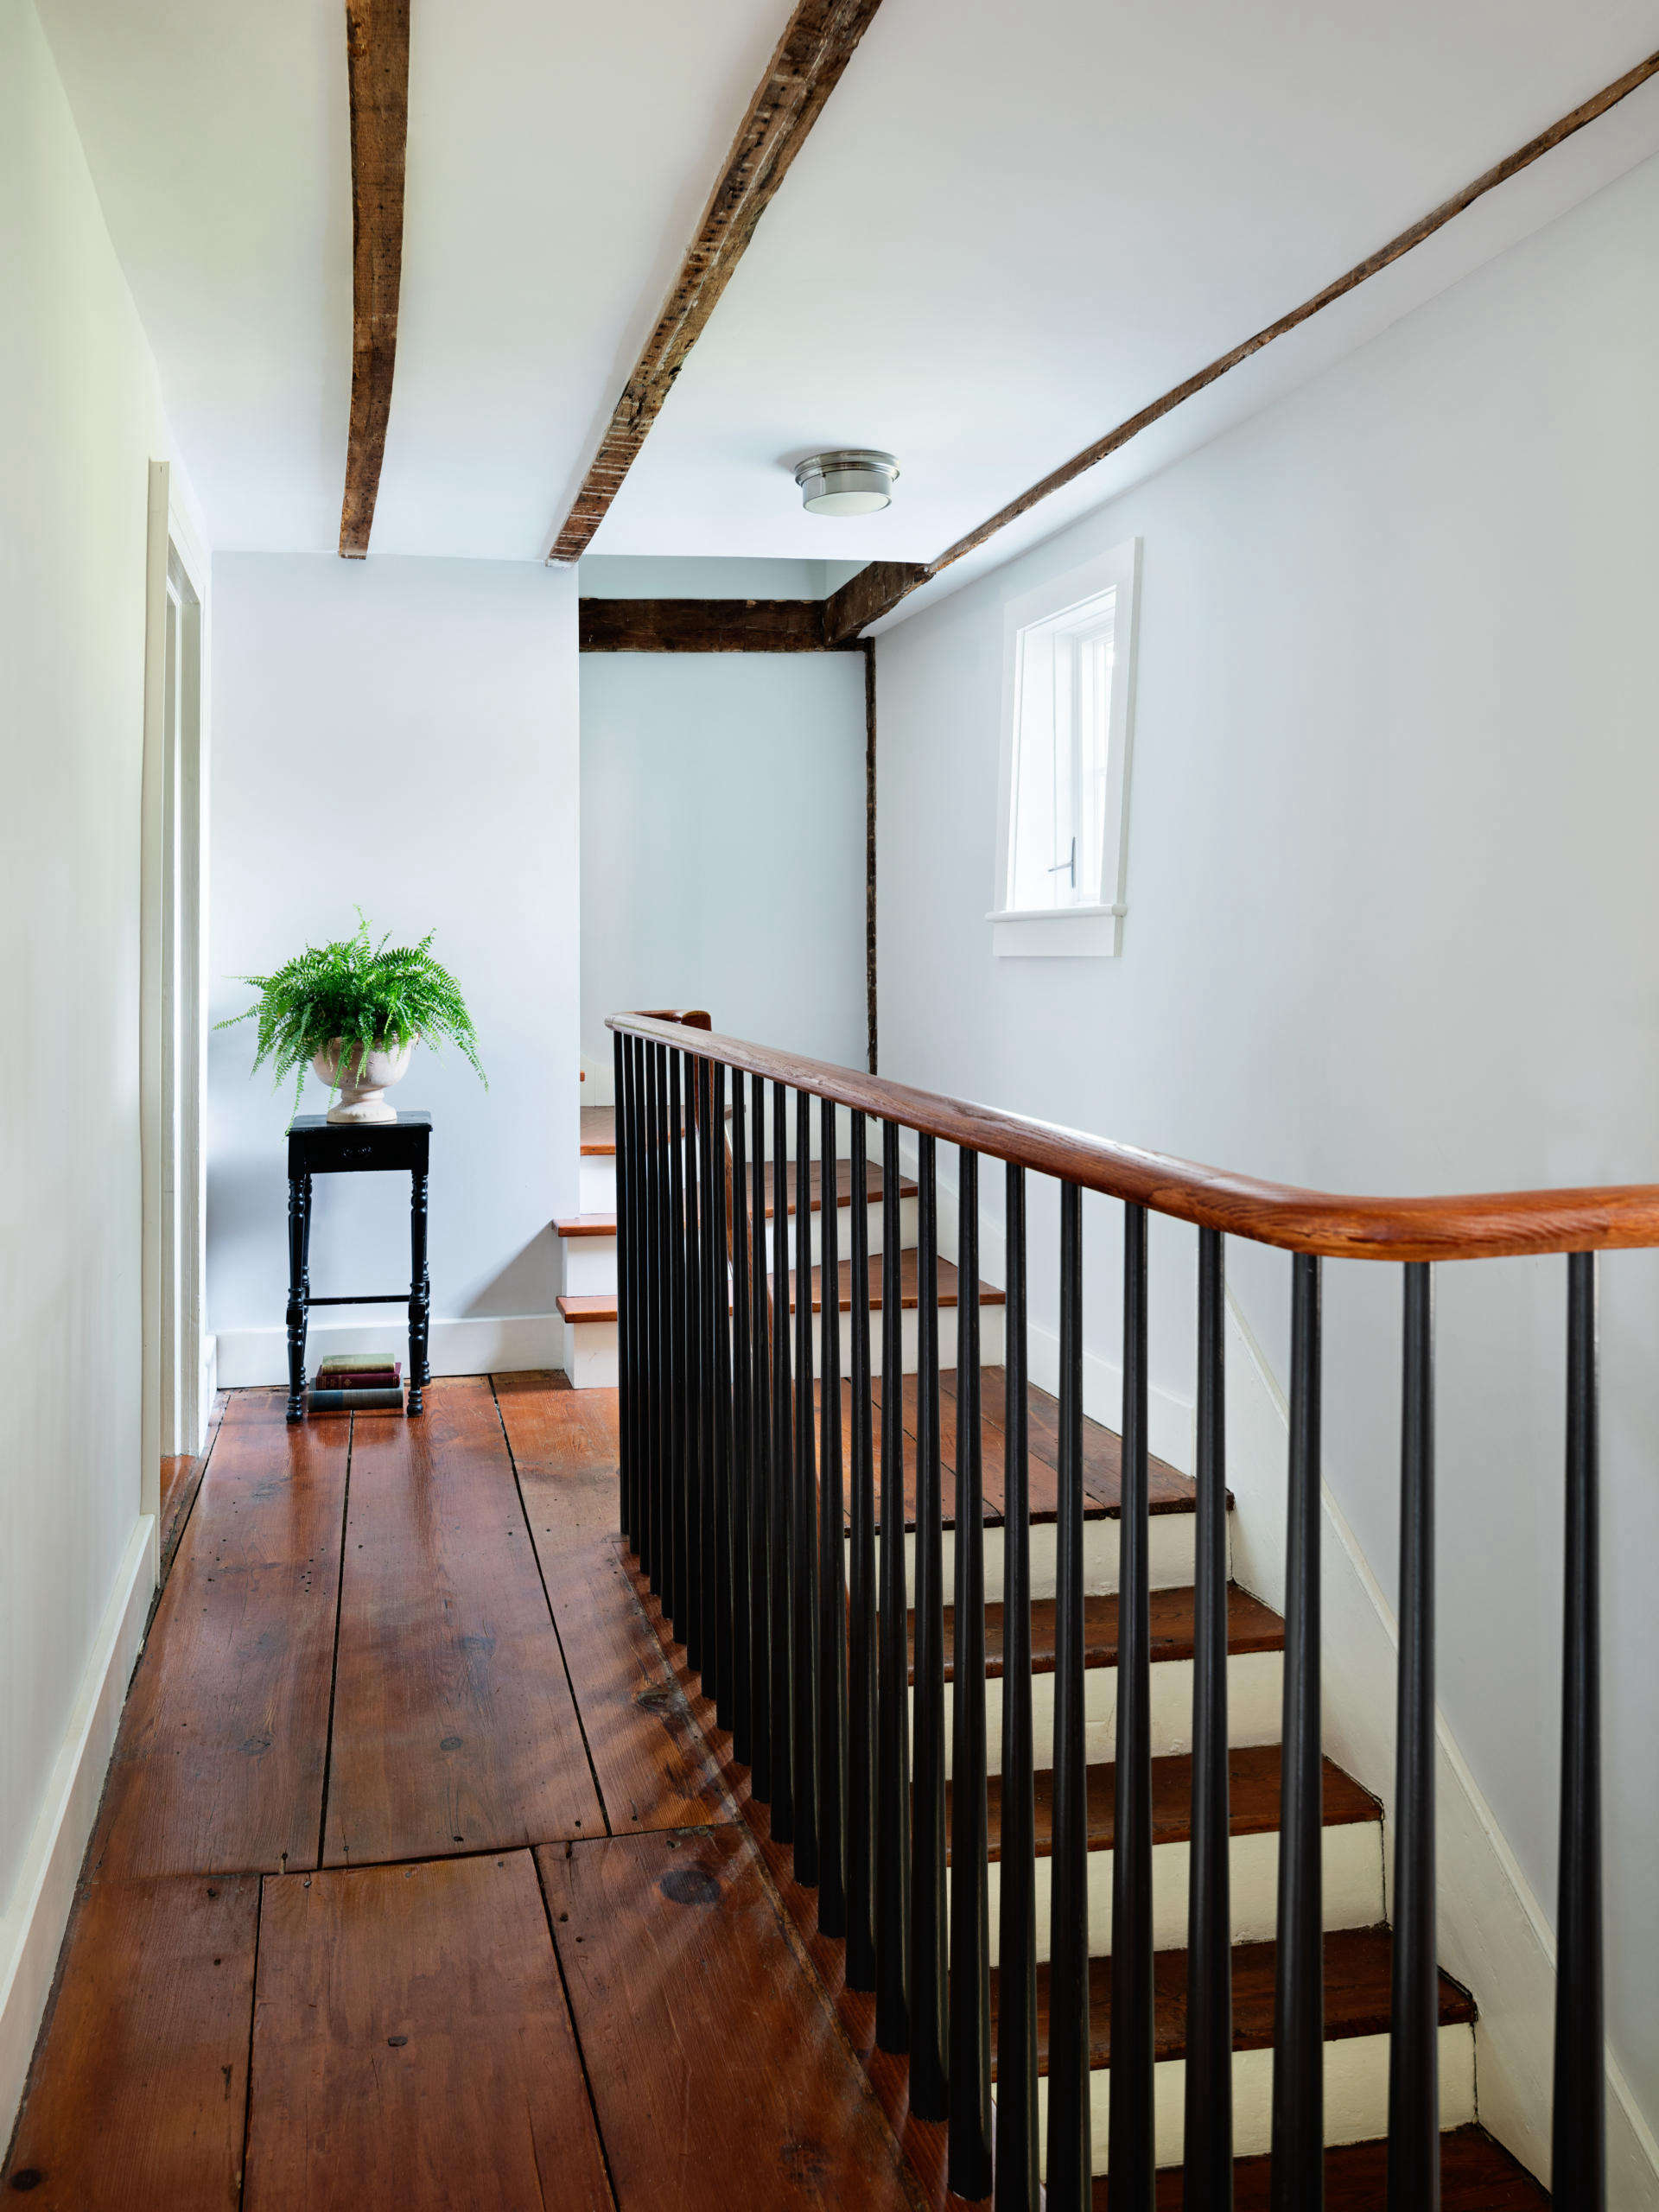 The house retains its original stair (with a new railing in place of a Sheetrock wall) and extra-wide floorboards.